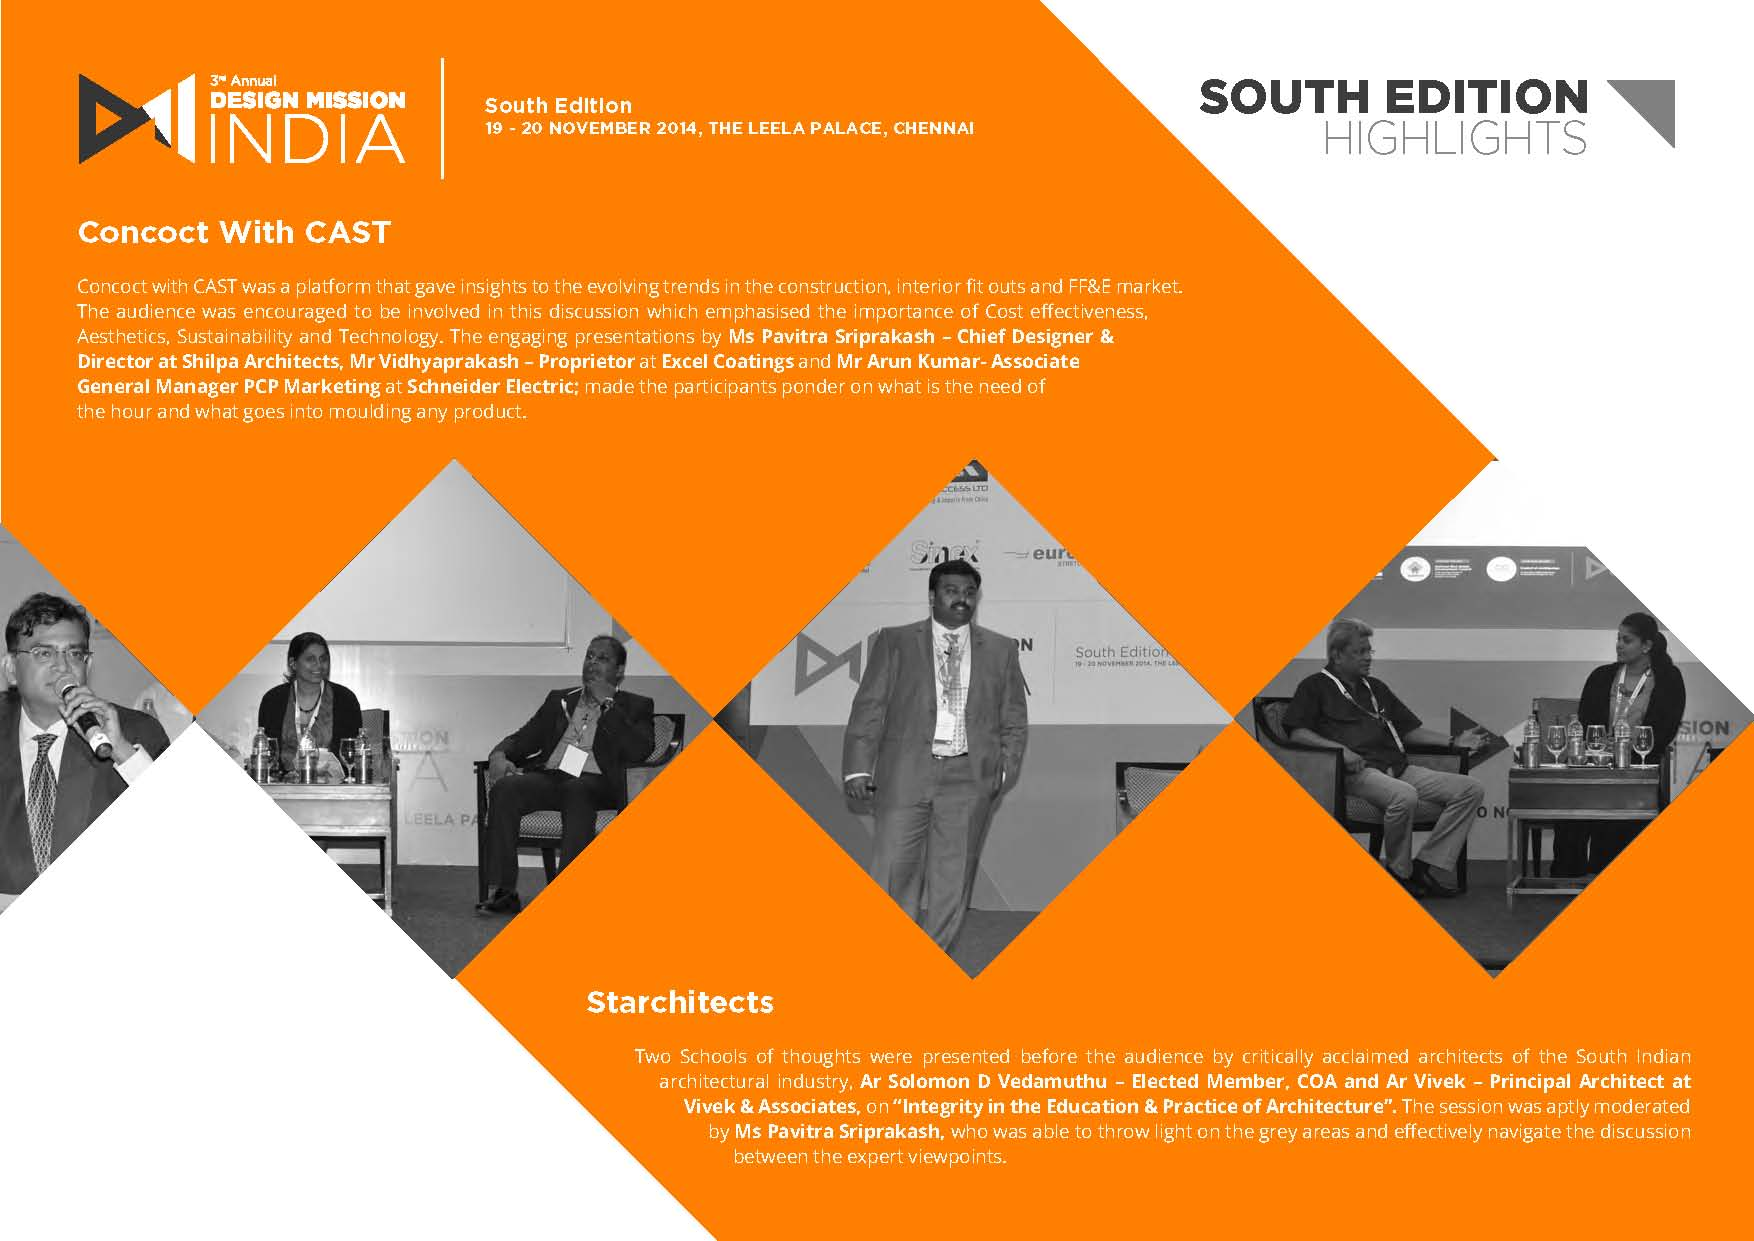 3rd Annual Design Mission India: POST EVENT REPORT with Pavitra Sri Prakash, the Chief Designer and Director of Shilpa Architects.   Pavitra spoke at a panel about designing products that highlight its Uniqueness in Cost effectiveness, Aesthetics, Sustainability or Technology. The conference was hosted in partnership with NAREDCO (National Real Estate Development Council) and Council of Architecture (COA).